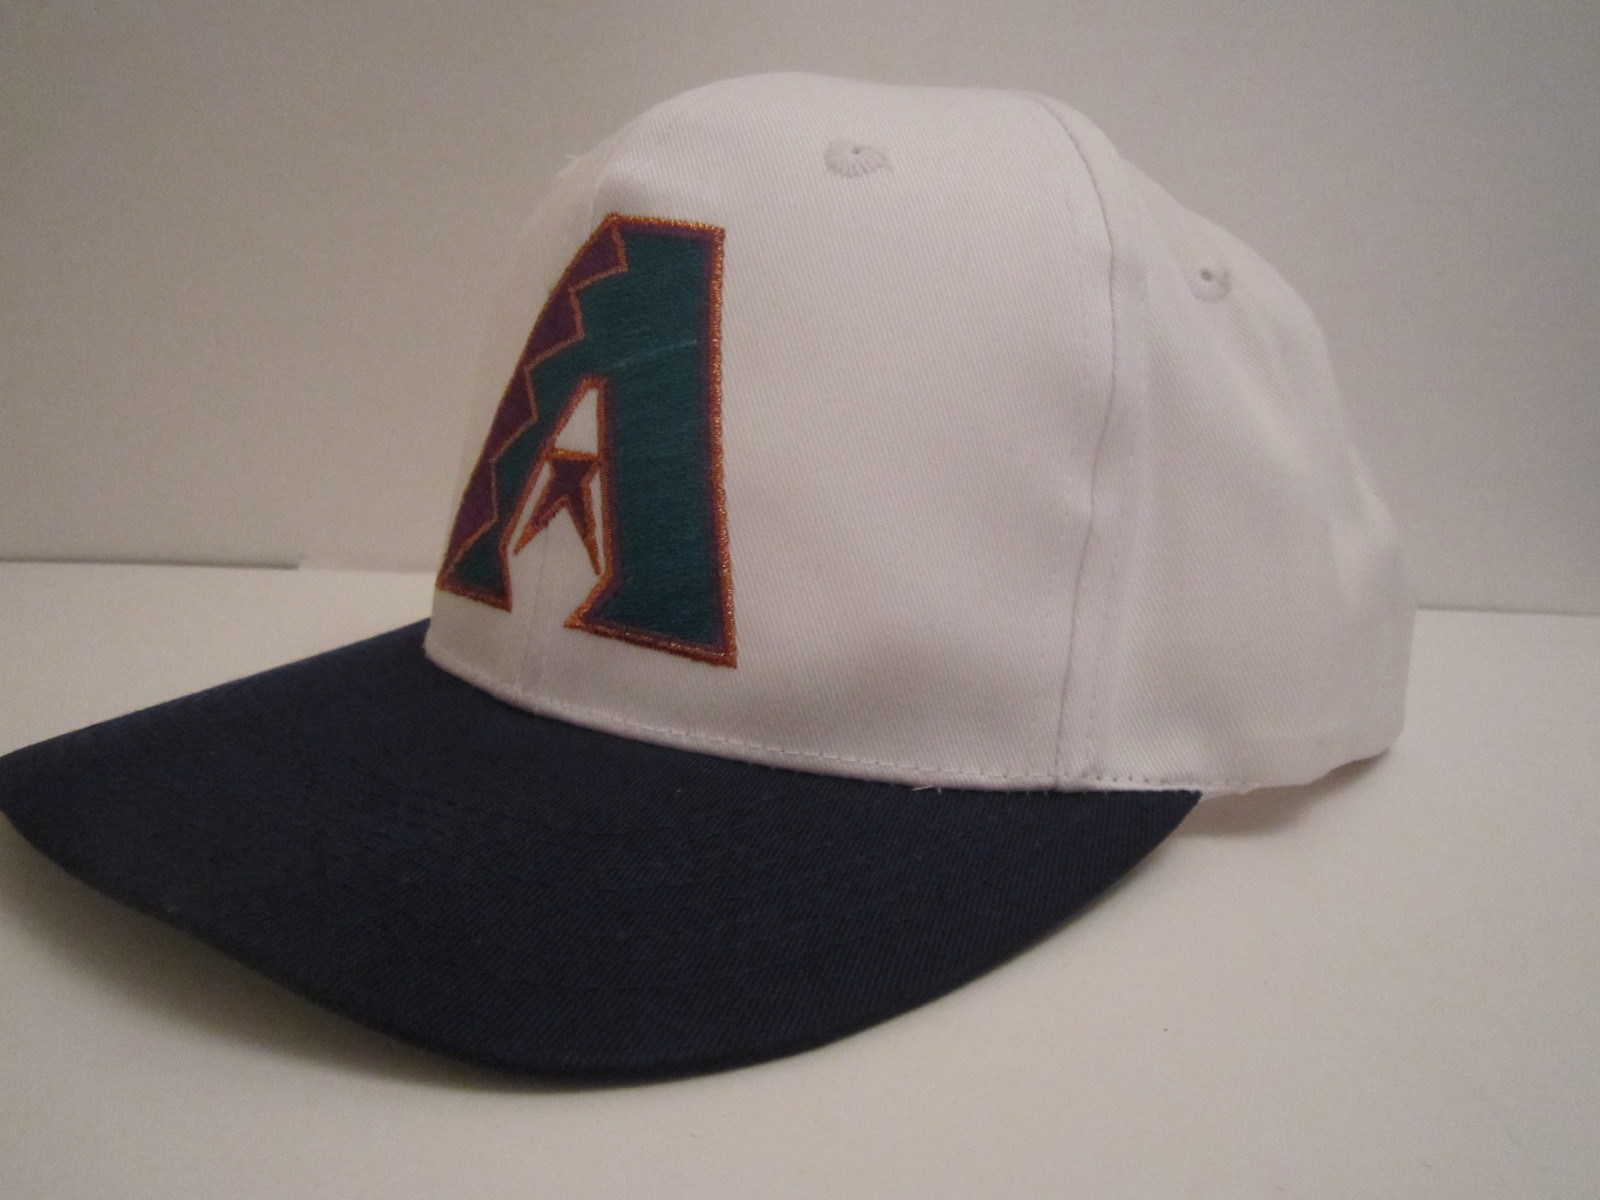 Primary image for Arizona Diamondbacks Vintage Late '90's MLB Cotton Ball Cap by New Era